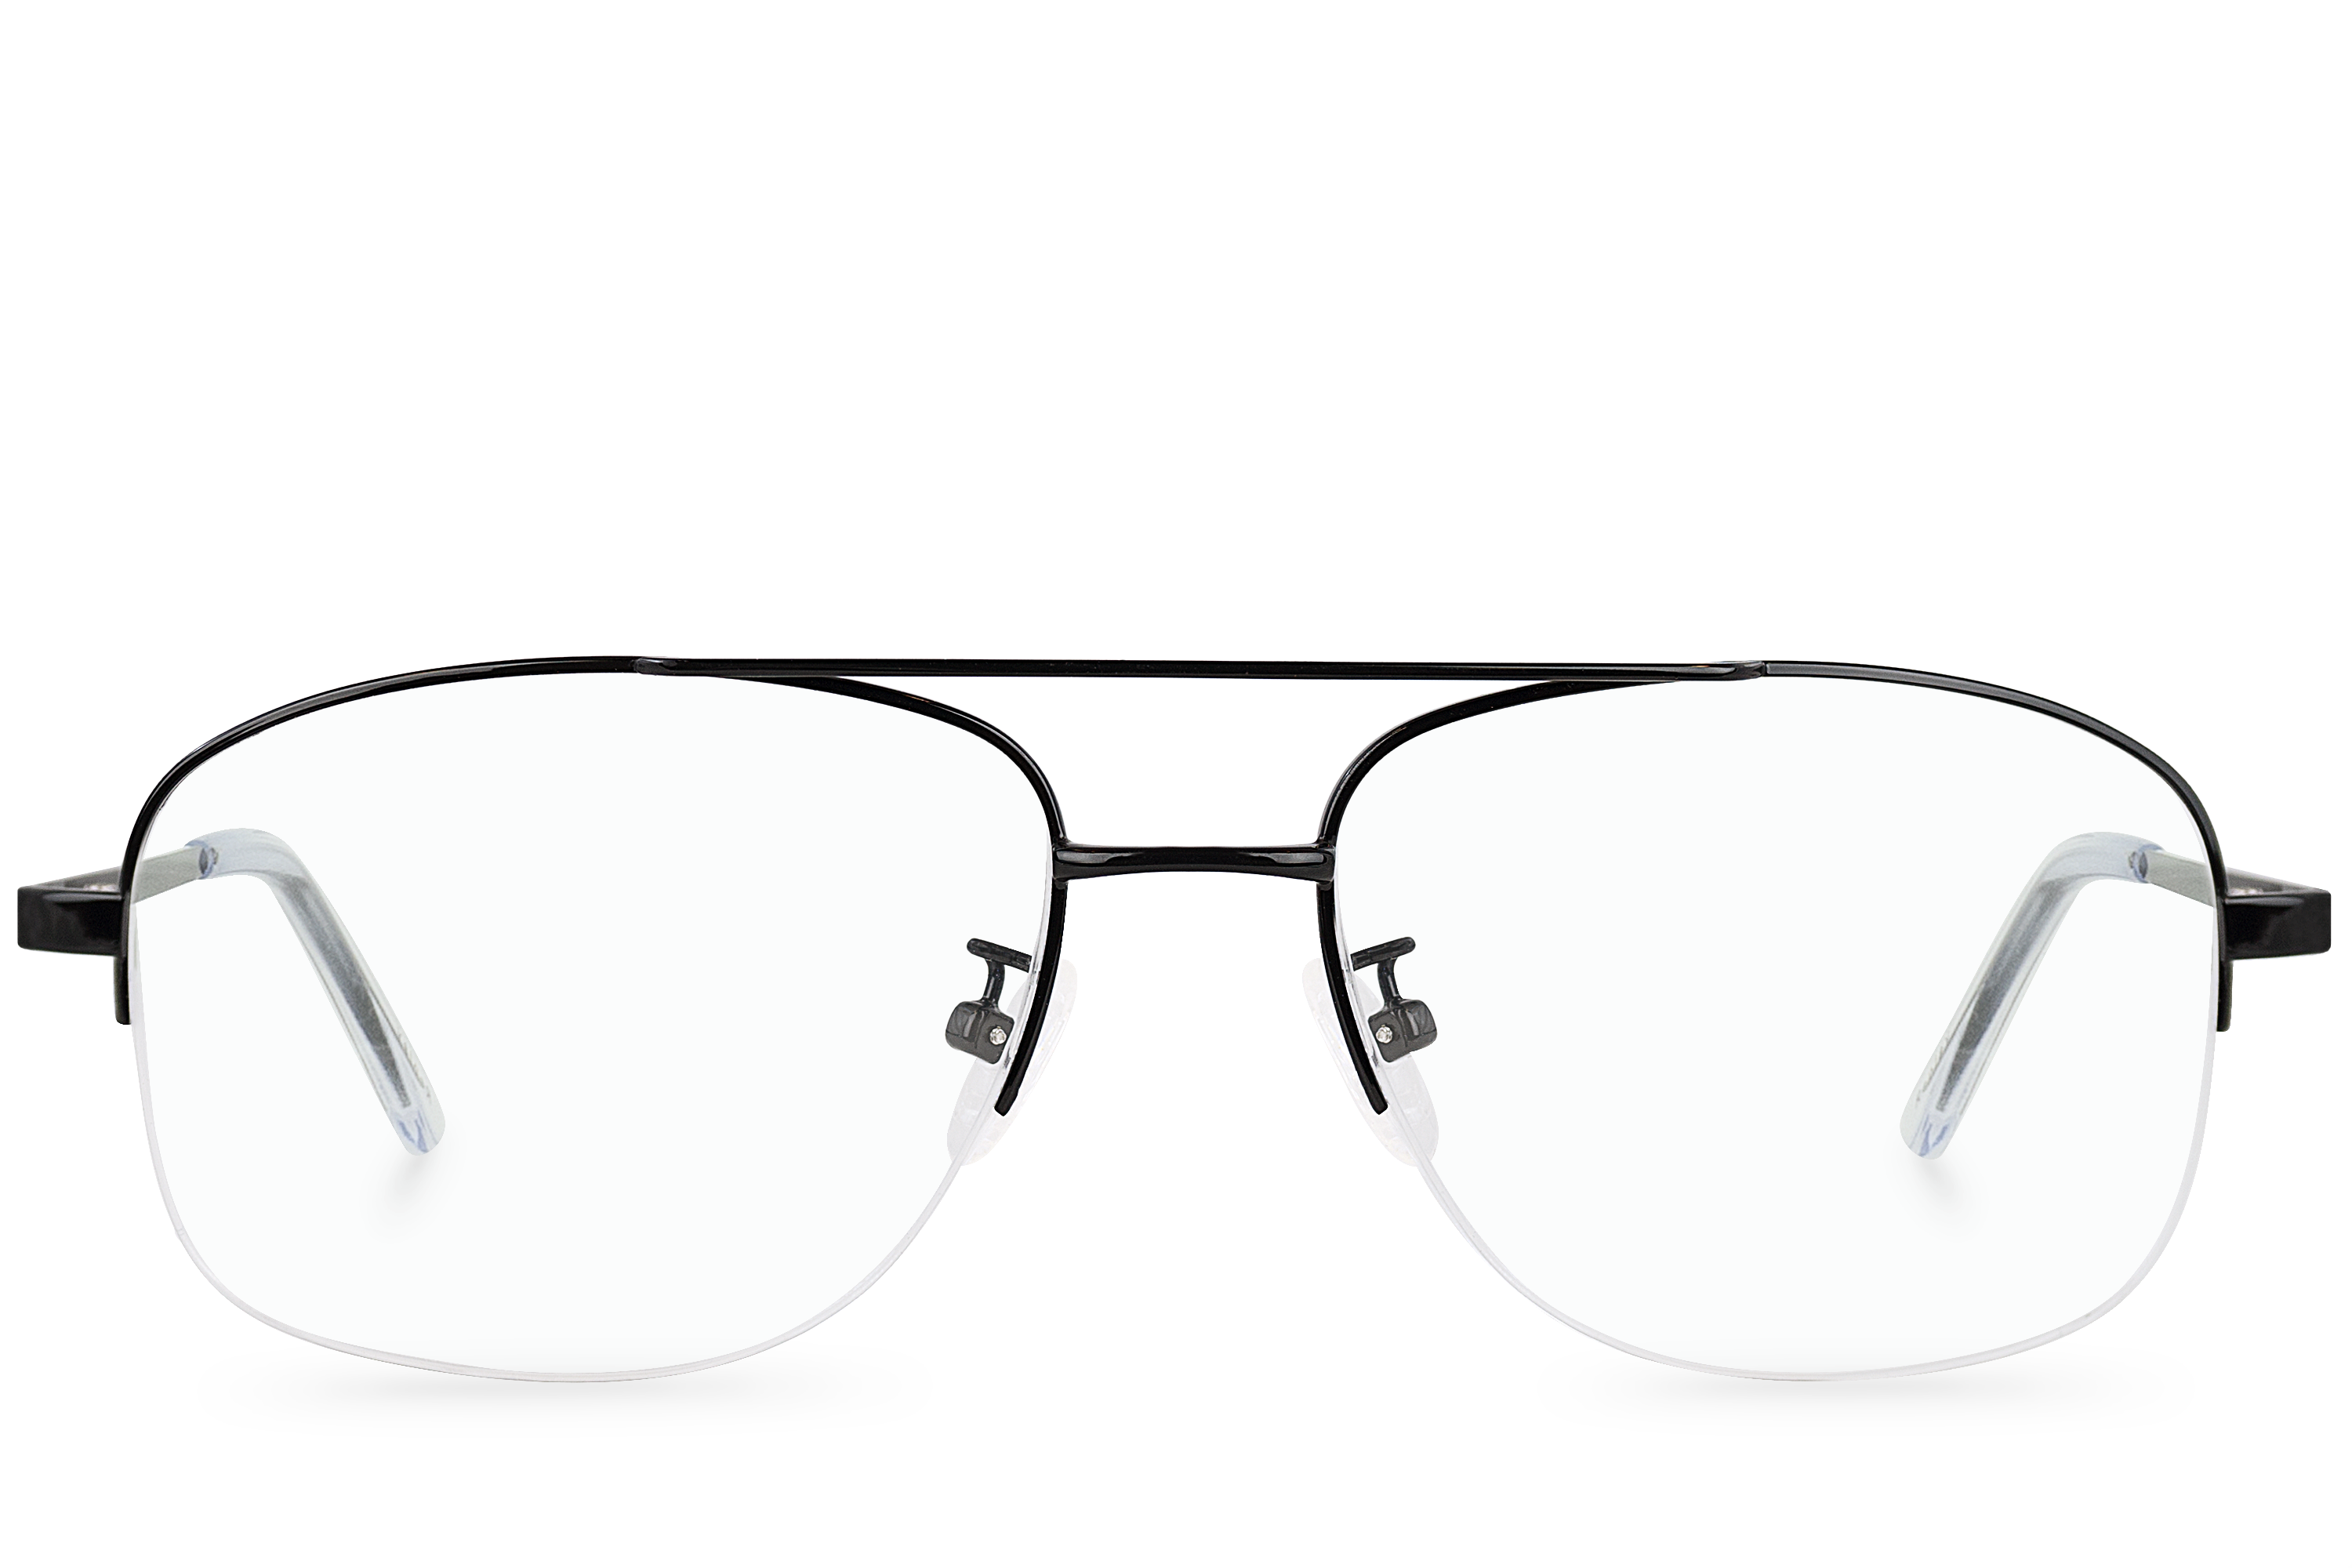 replay black polette glasses front view